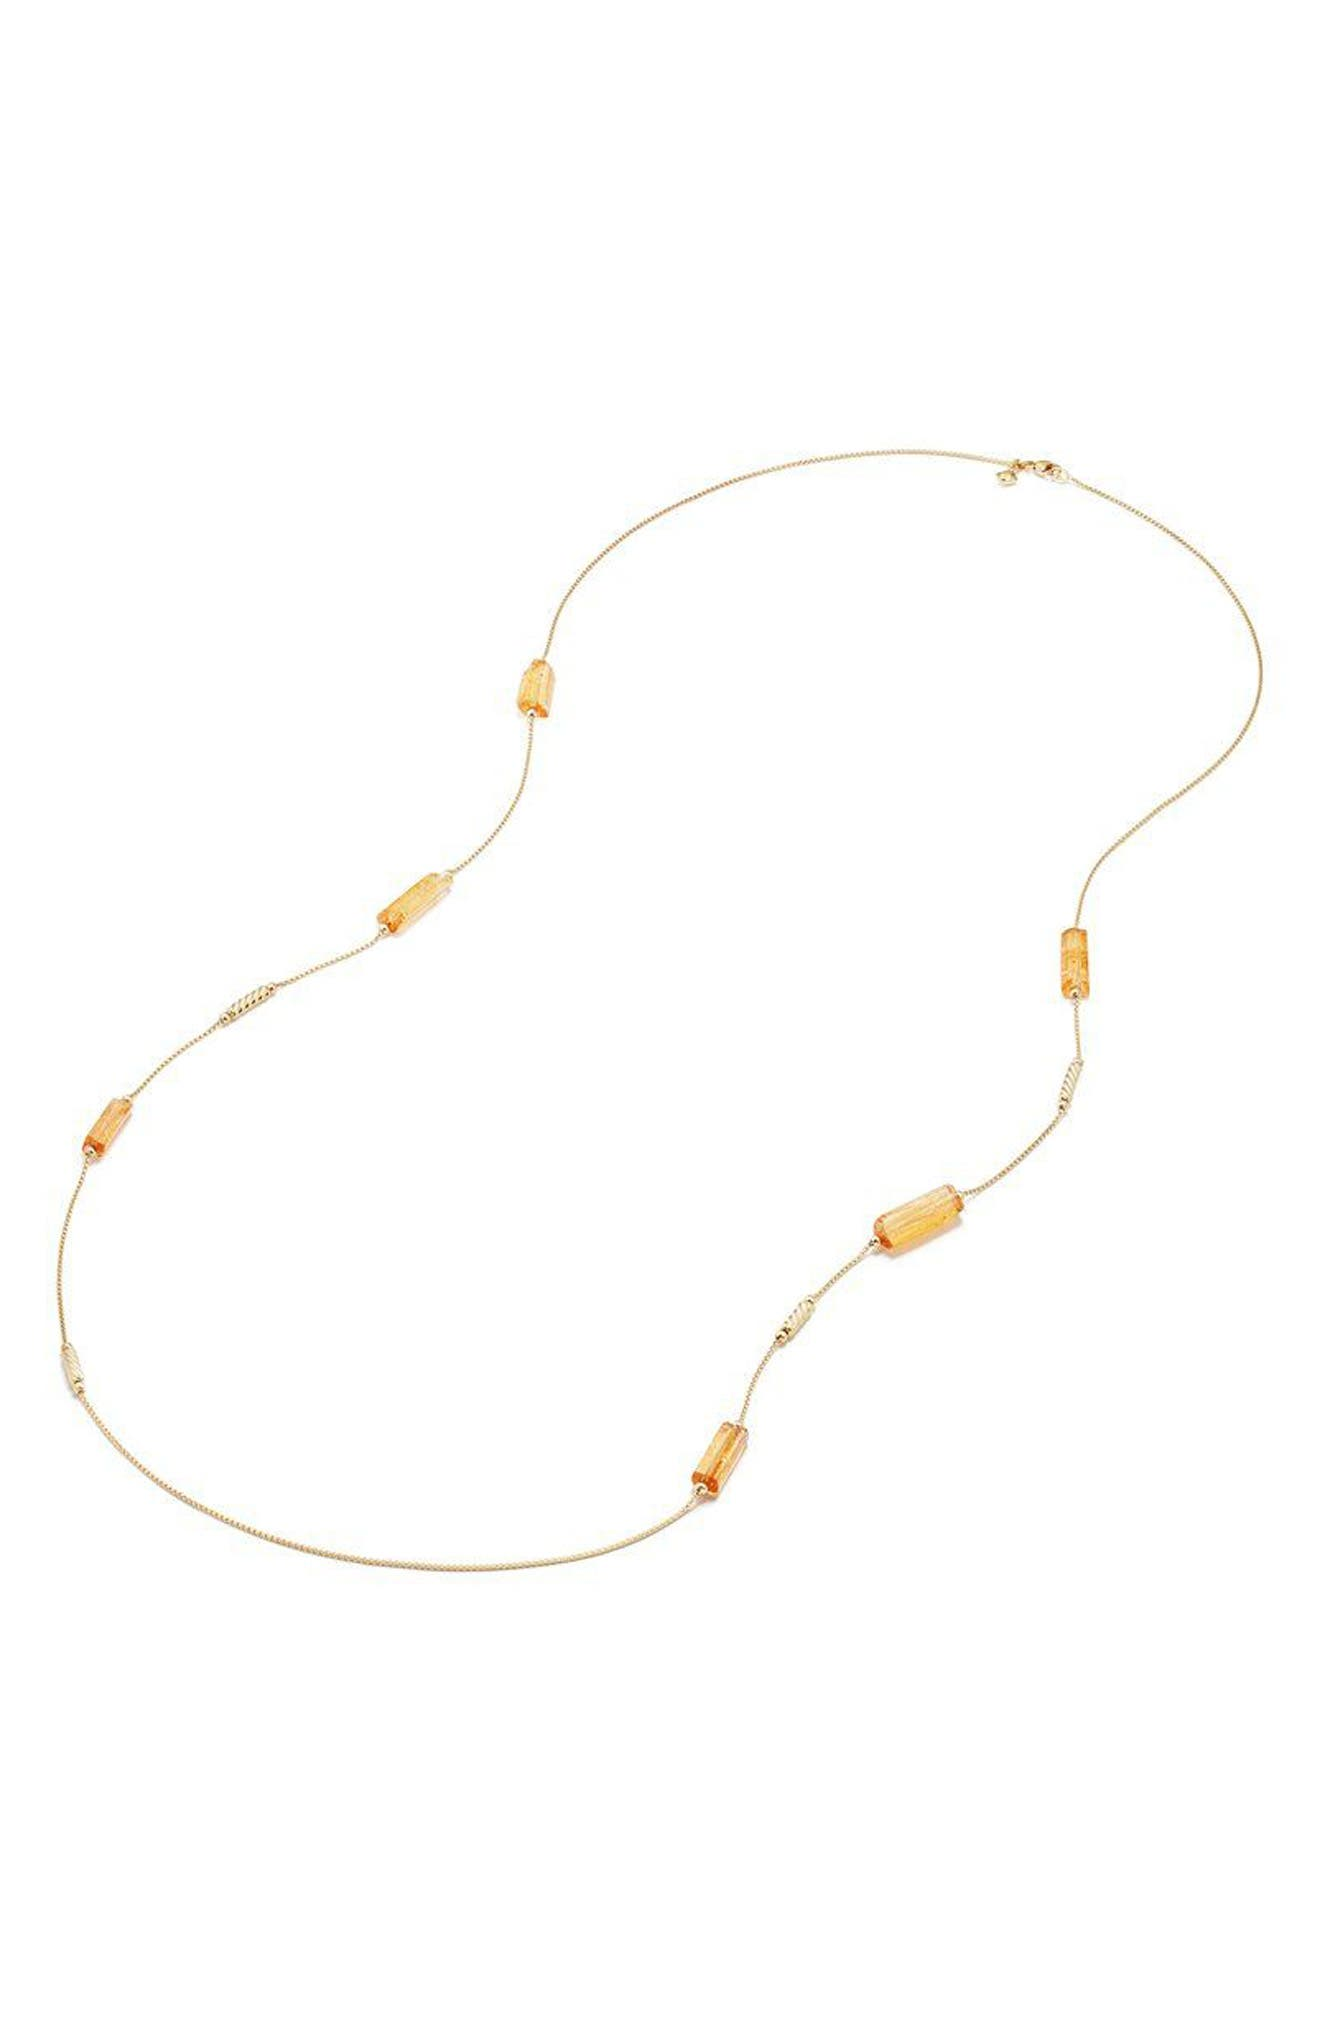 Fine Bead Imperial Topaz Chain Necklace,                             Alternate thumbnail 2, color,                             800